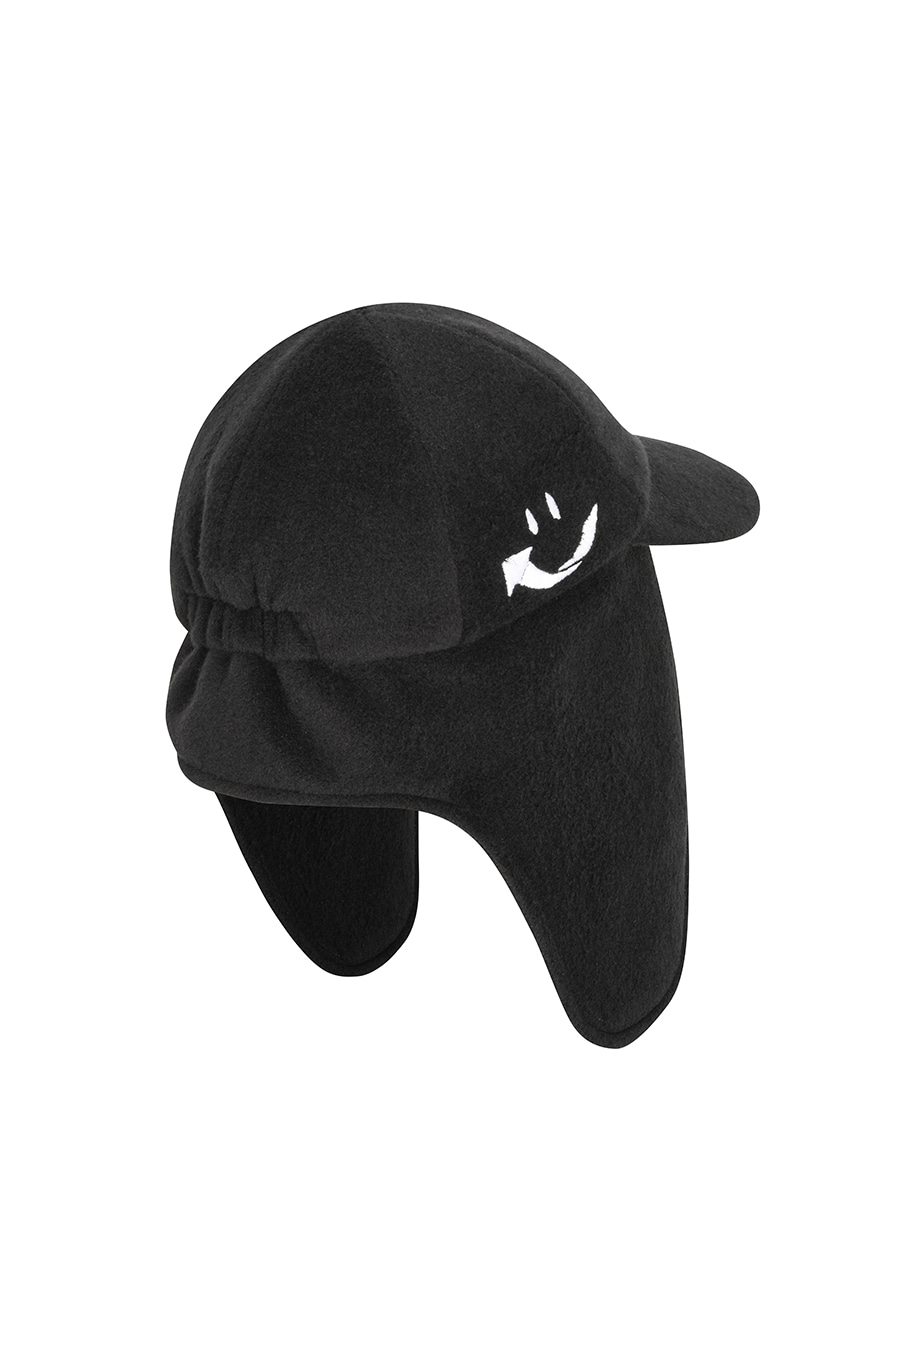 Nomadism Artwork Ear Flap Cap